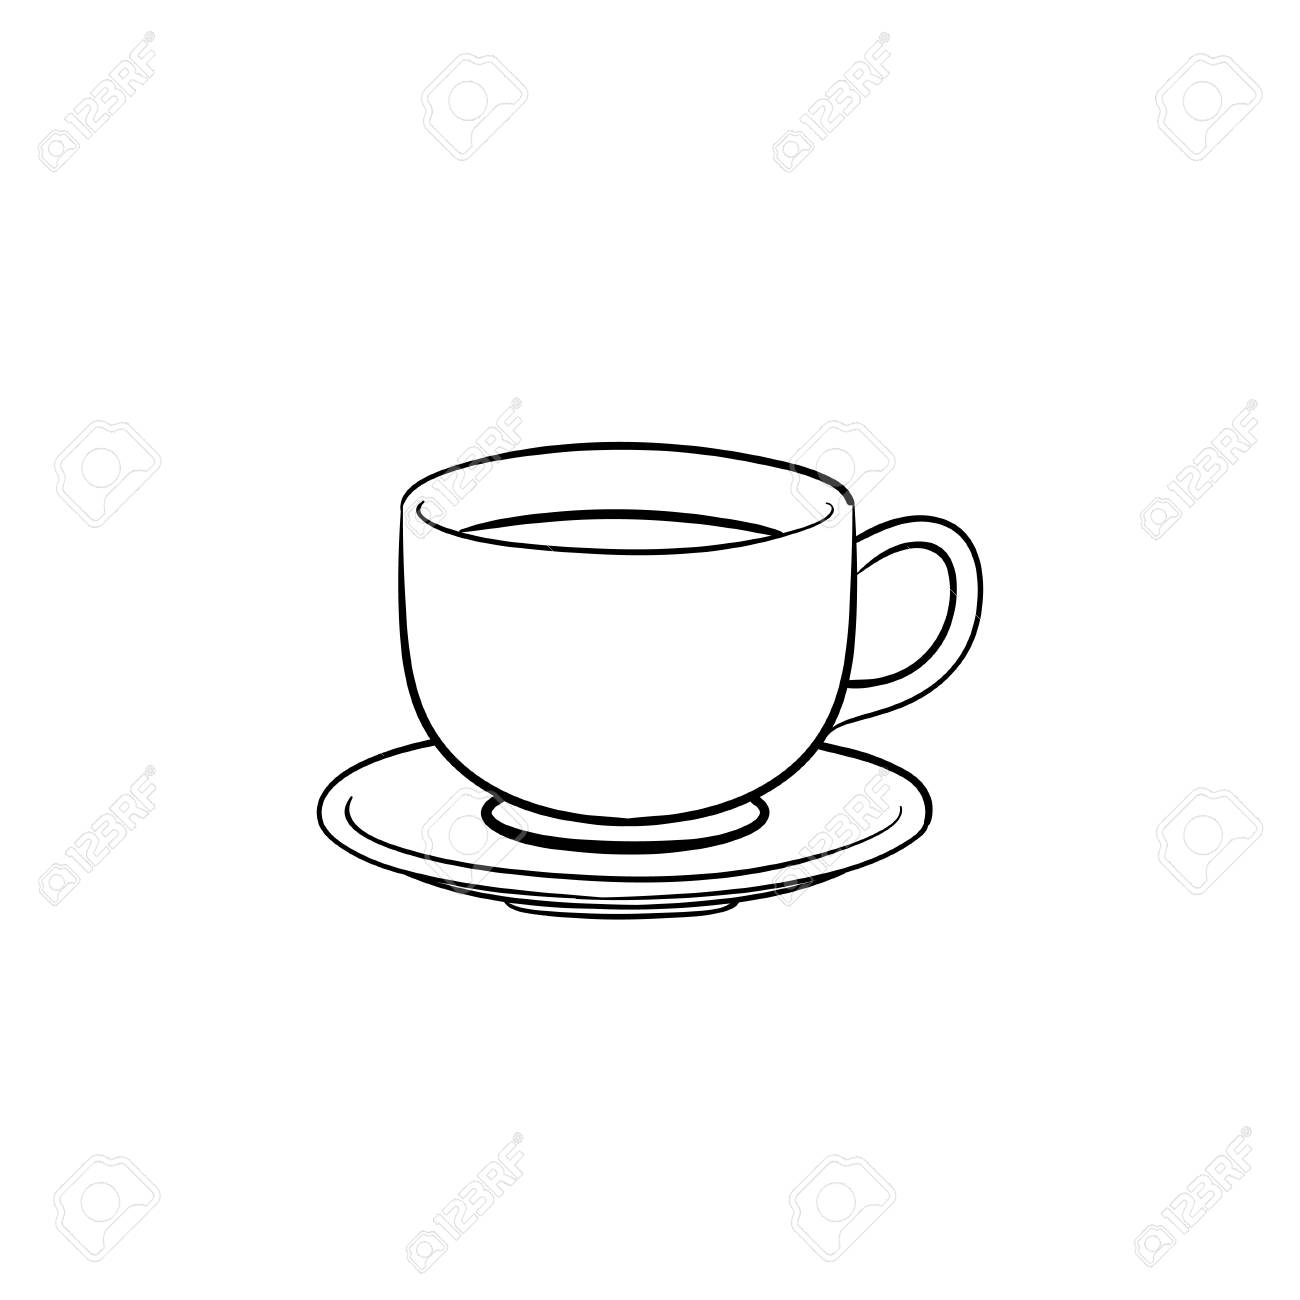 Coffee Cup Hand Drawn Outline Doodle Icon Saucer And Cup Of Royalty Free Cliparts Vectors And Stock Illustration Image 100021618